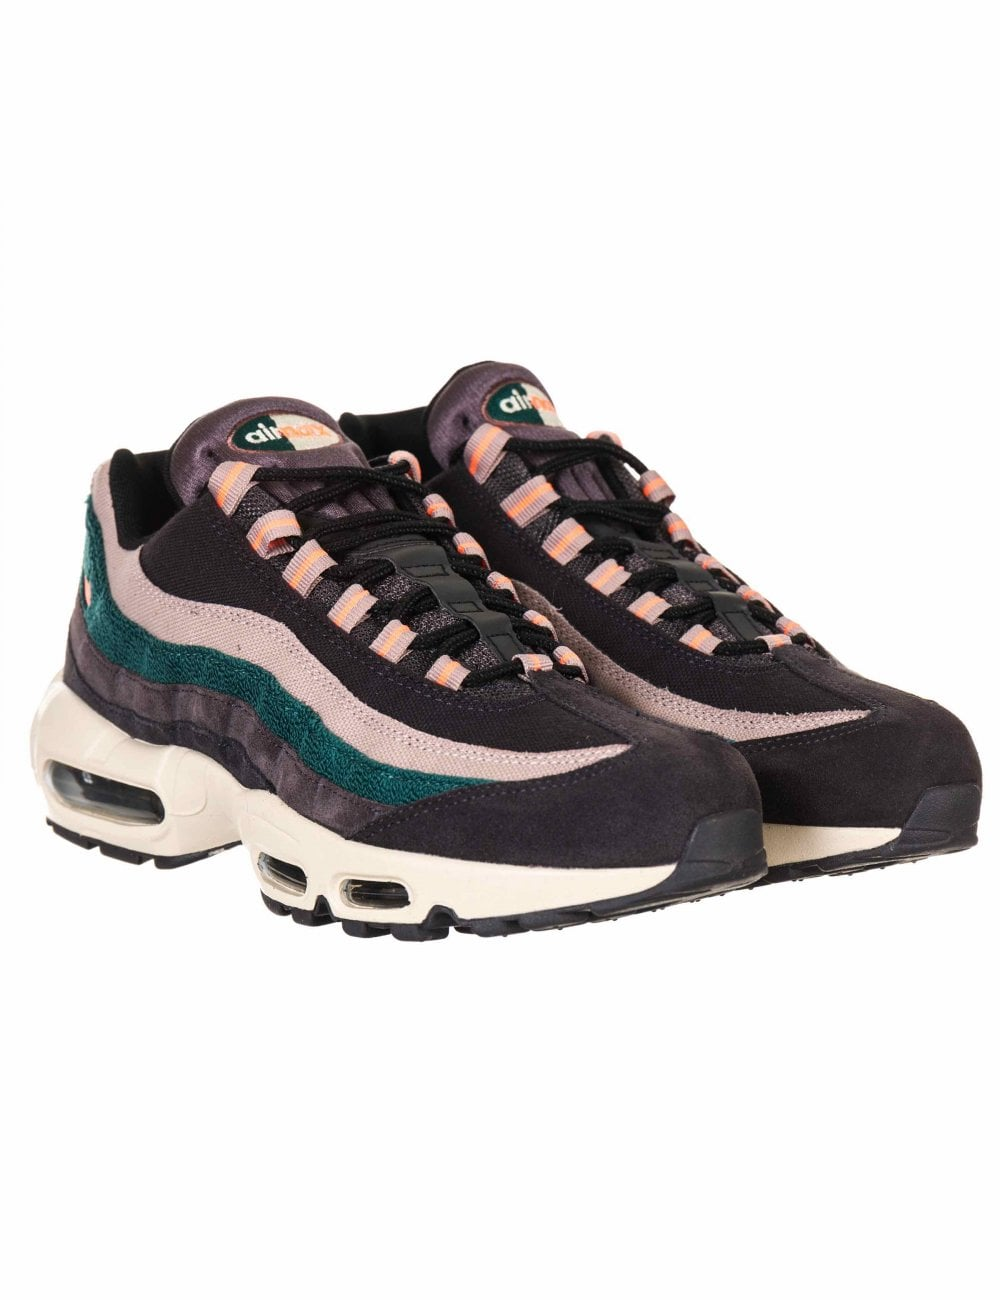 Air Max 95 Premium Trainers - Oil Grey/Bright Mango